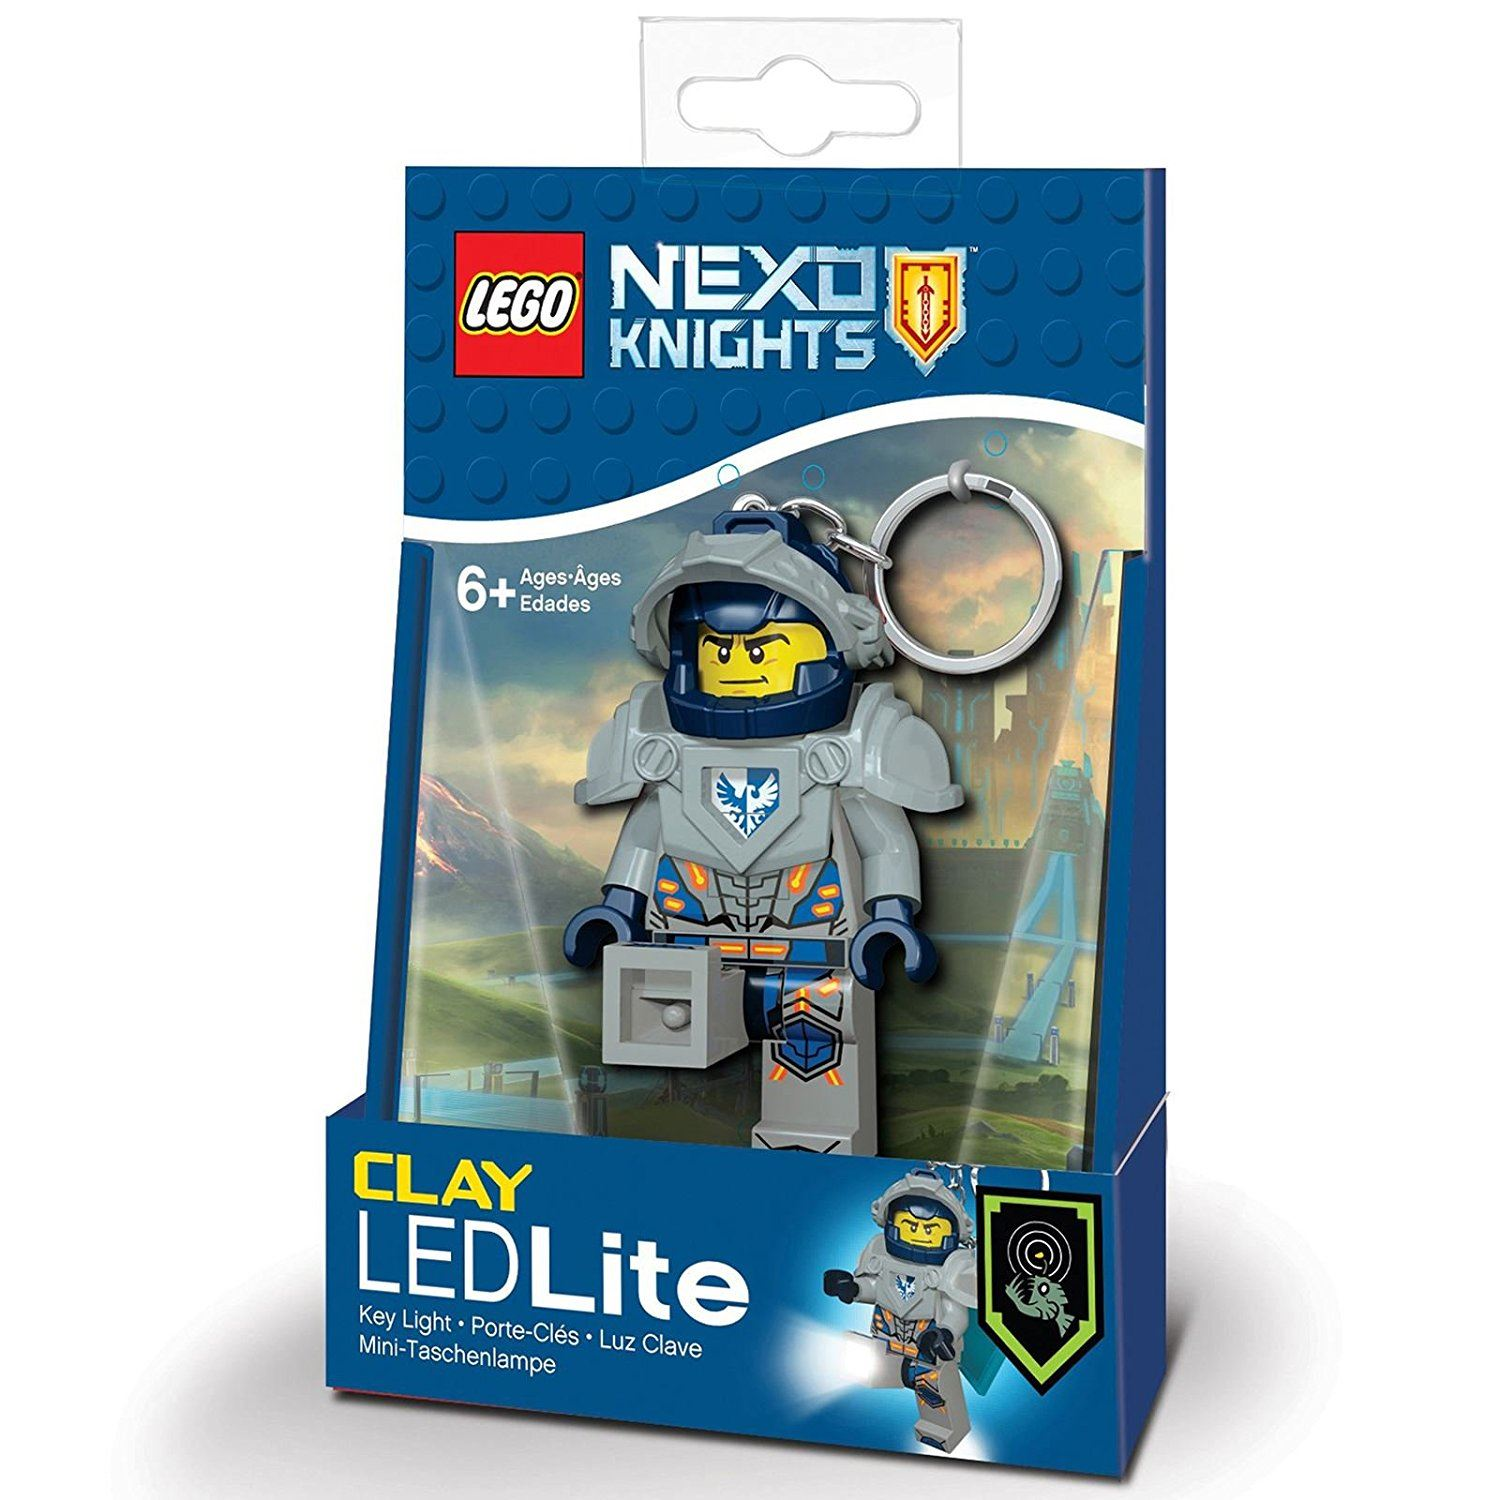 Lego Nexo Knights (clay) Key Light #31219